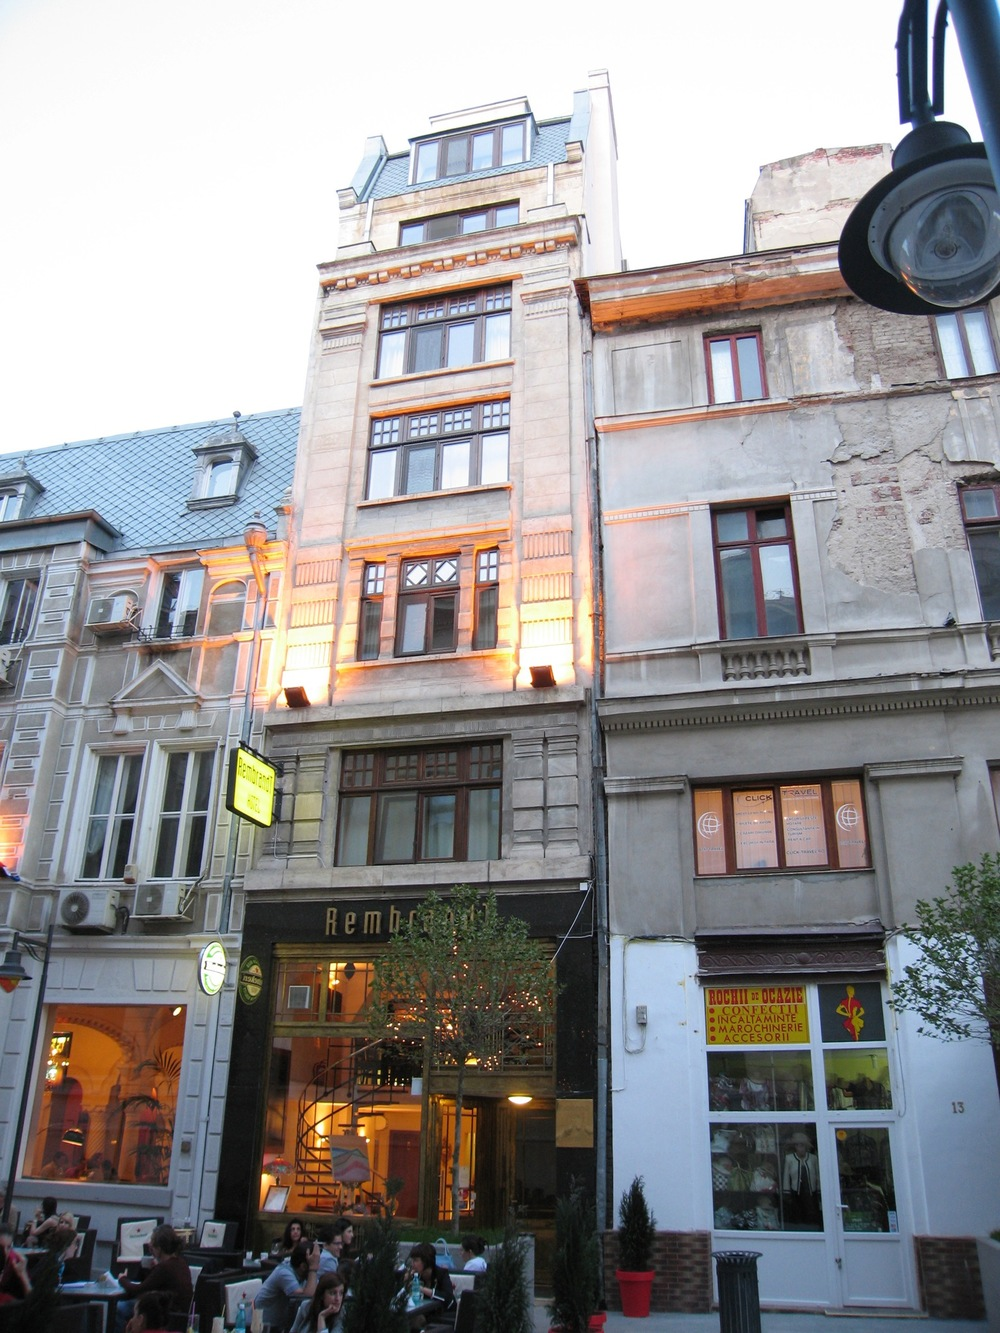 The Rembrandt Hotel in Bucharest